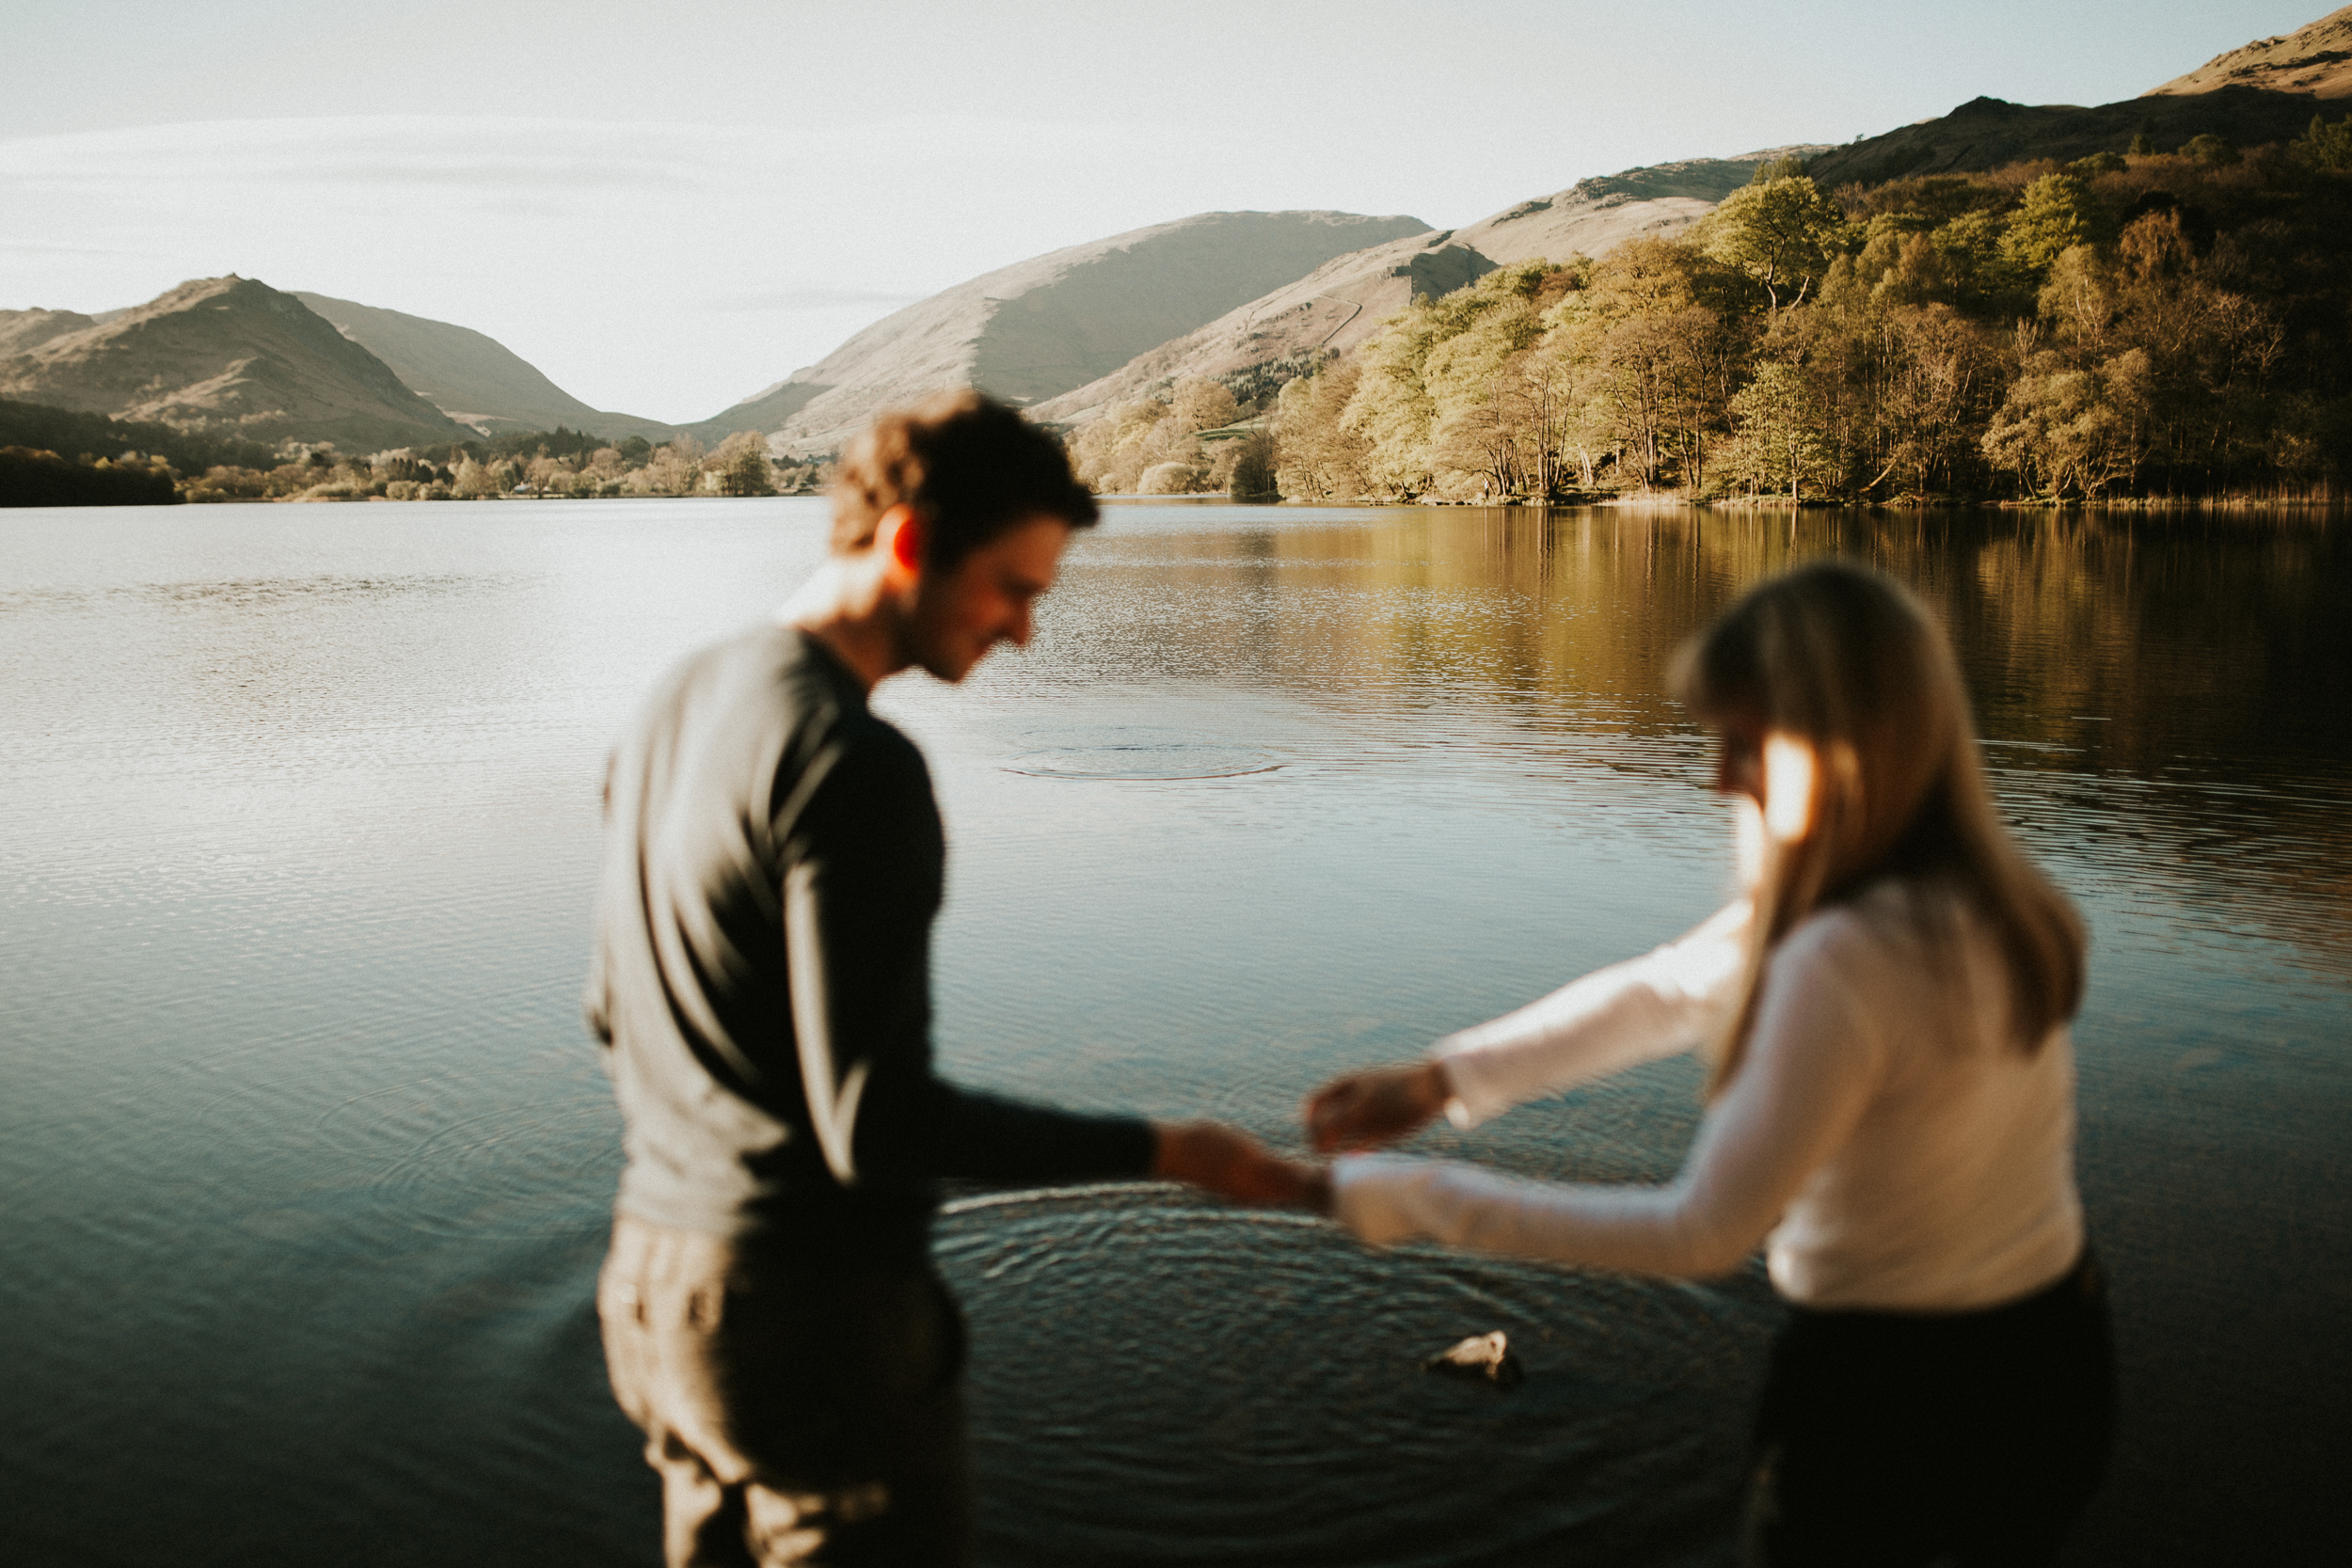 Claire-Clive-Engagement-Shoot-Lake-District-Darina-Stoda-Photography-82.jpg